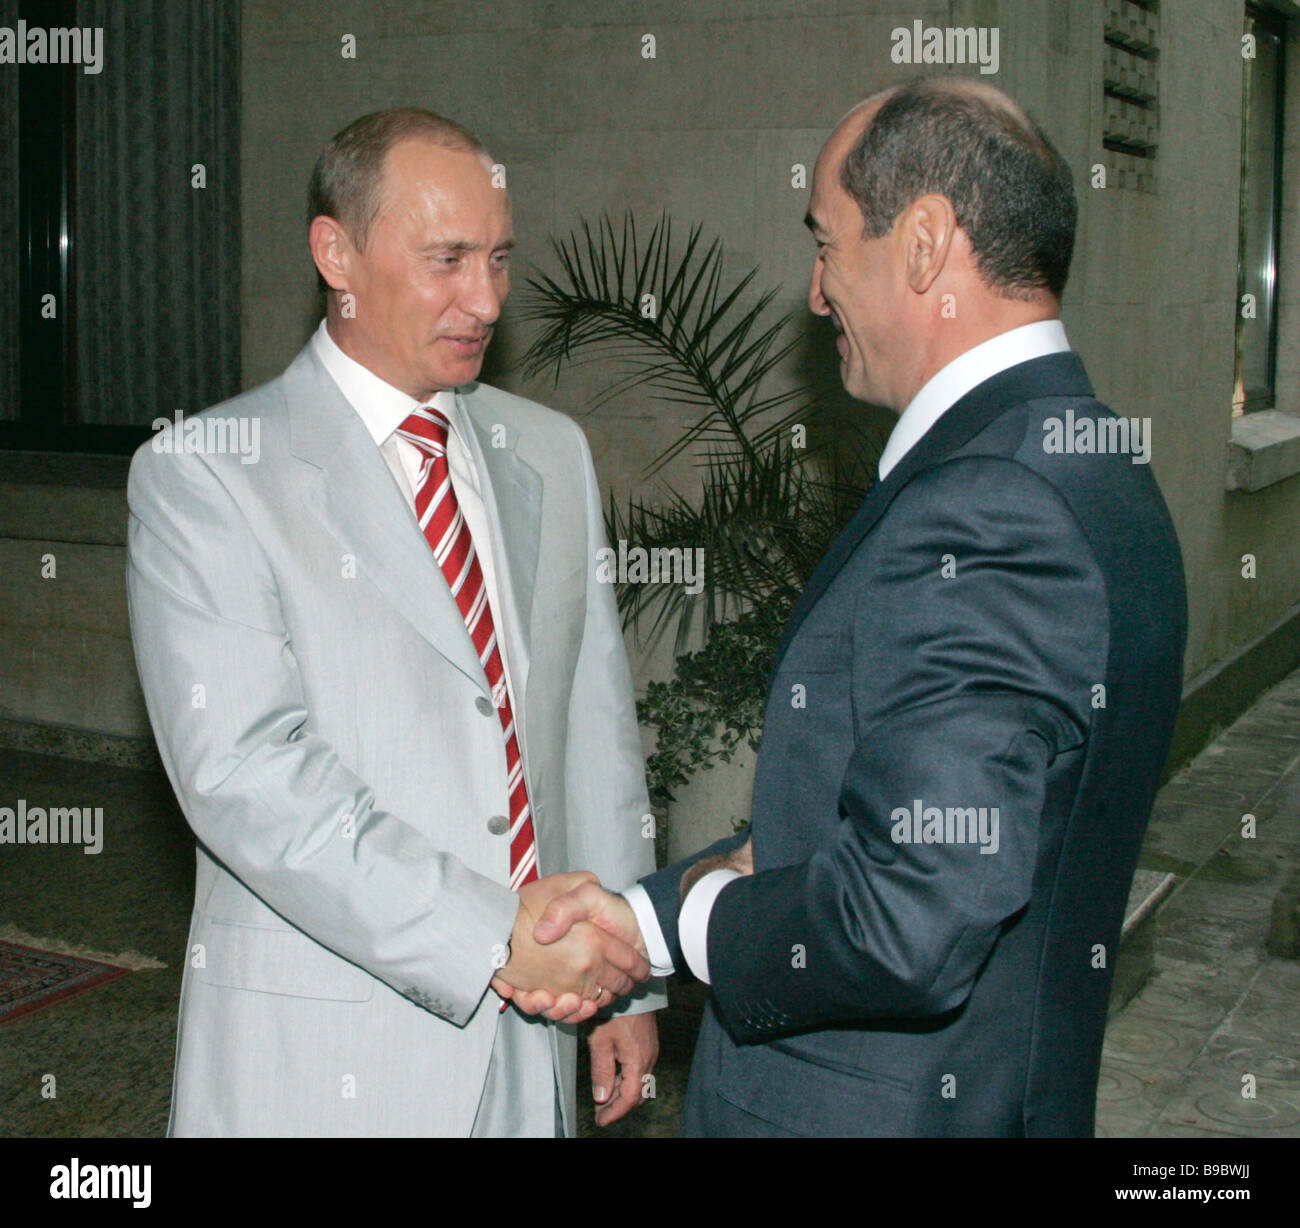 Presidents vladimir putin of russia left and robert kocharyan of presidents vladimir putin of russia left and robert kocharyan of armenia meet in sochi on the russian black sea coast kristyandbryce Images